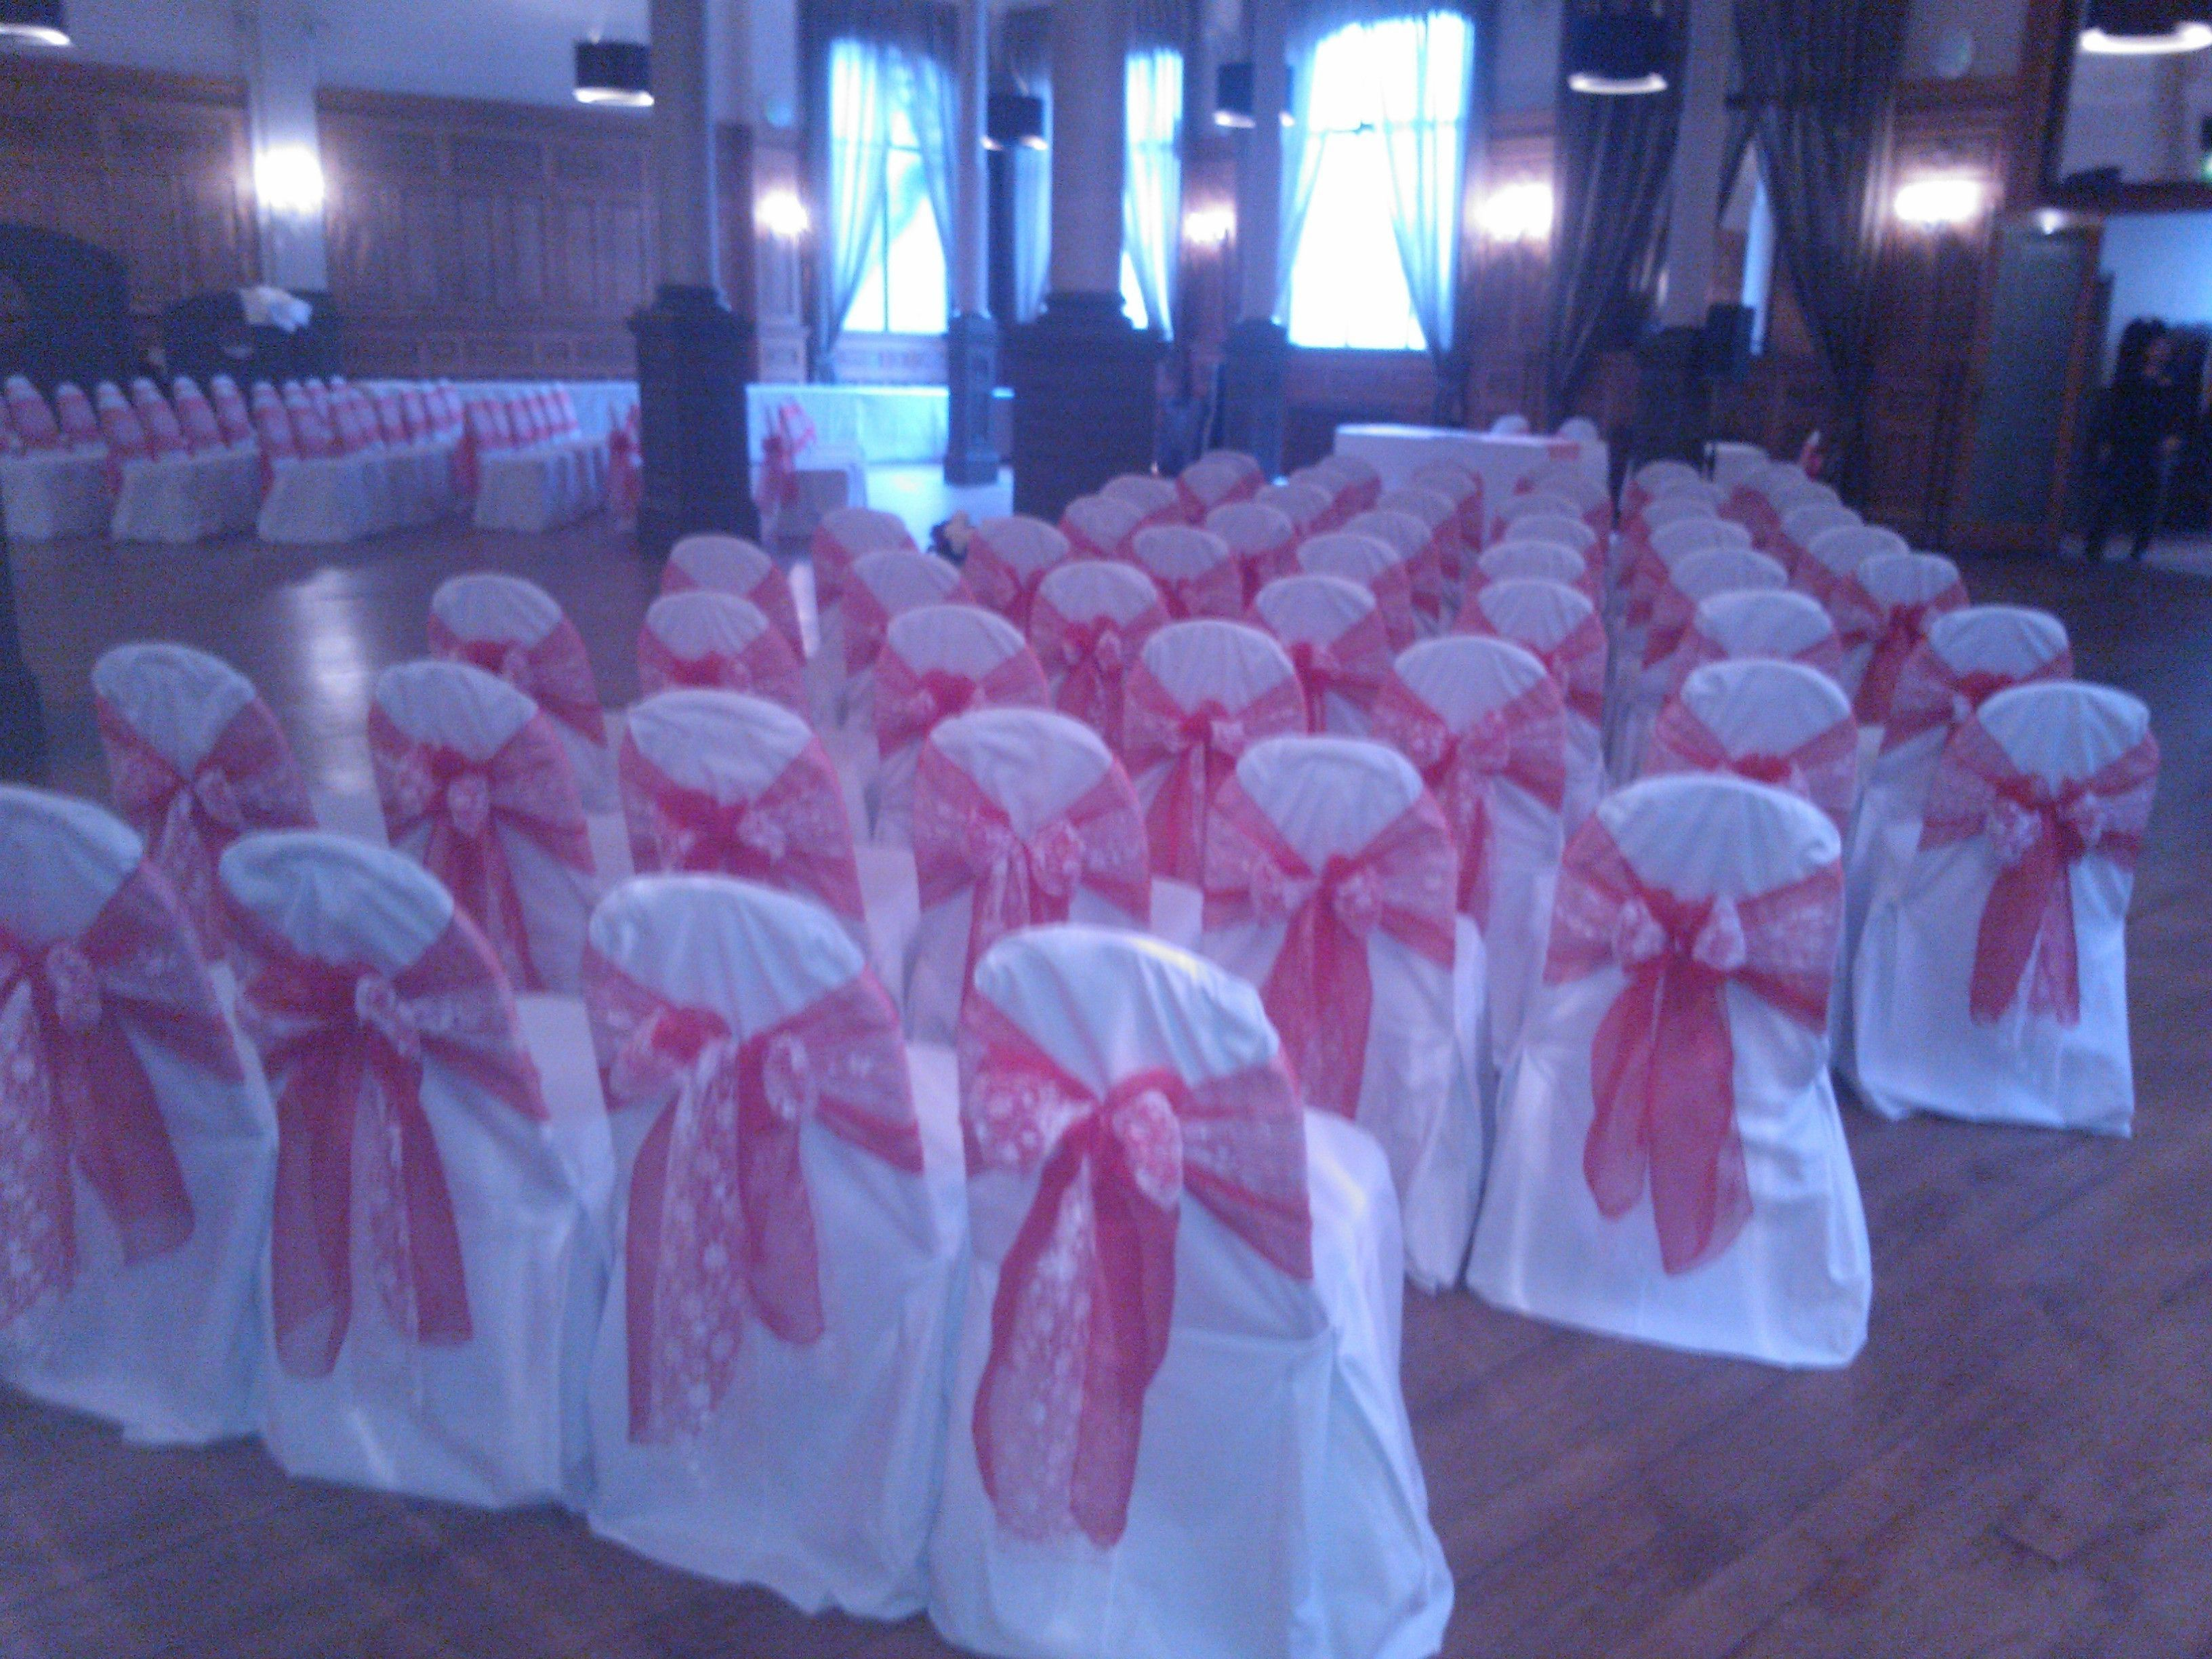 Red sashes with lace inserts on white chair covers A Christmas